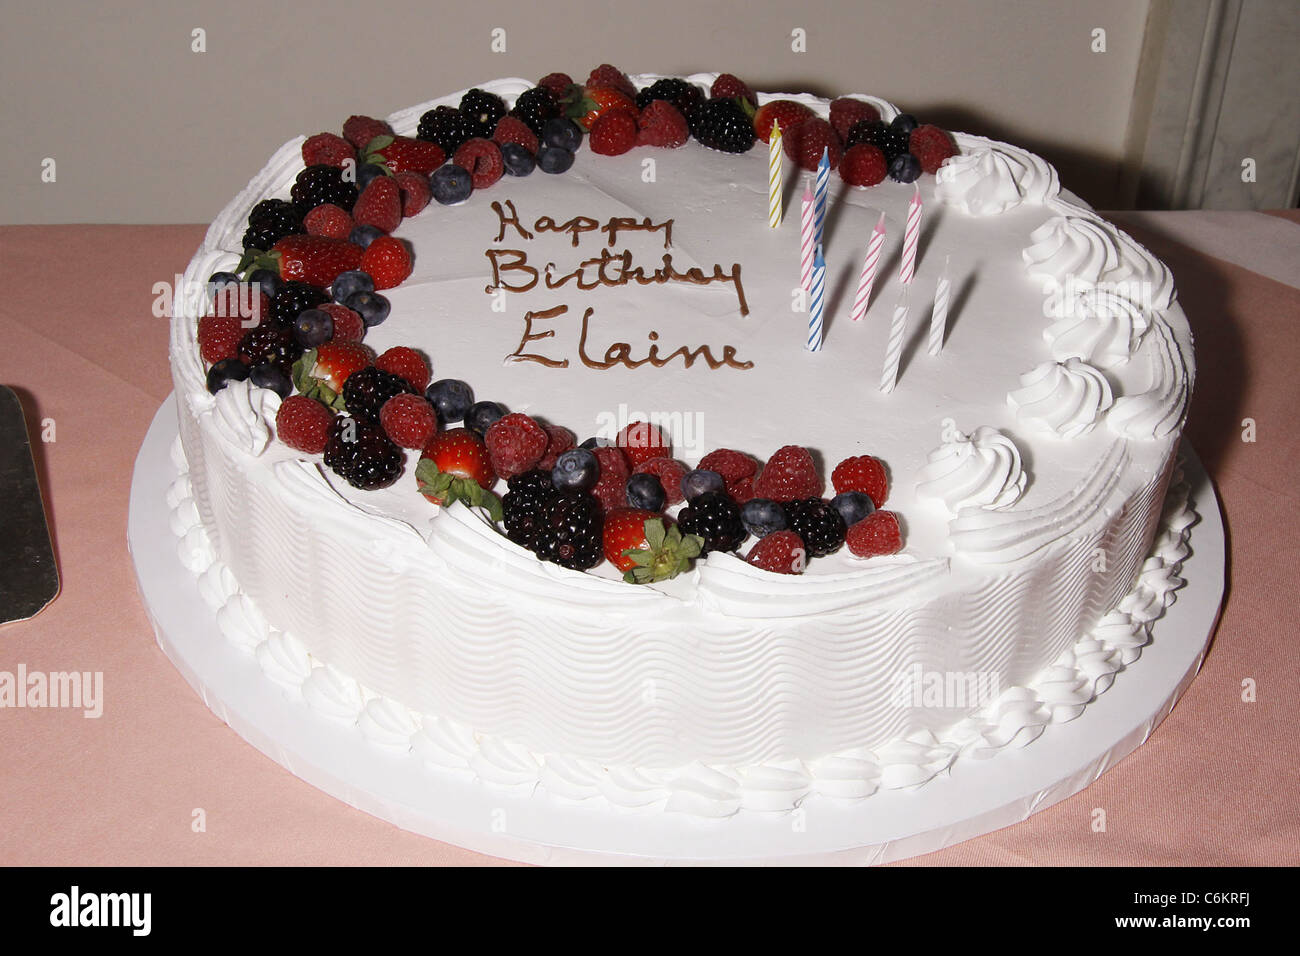 Elaine Stritch Birthday Cake Stritchs 85th Celebration At The Cafe Carlyle New York City